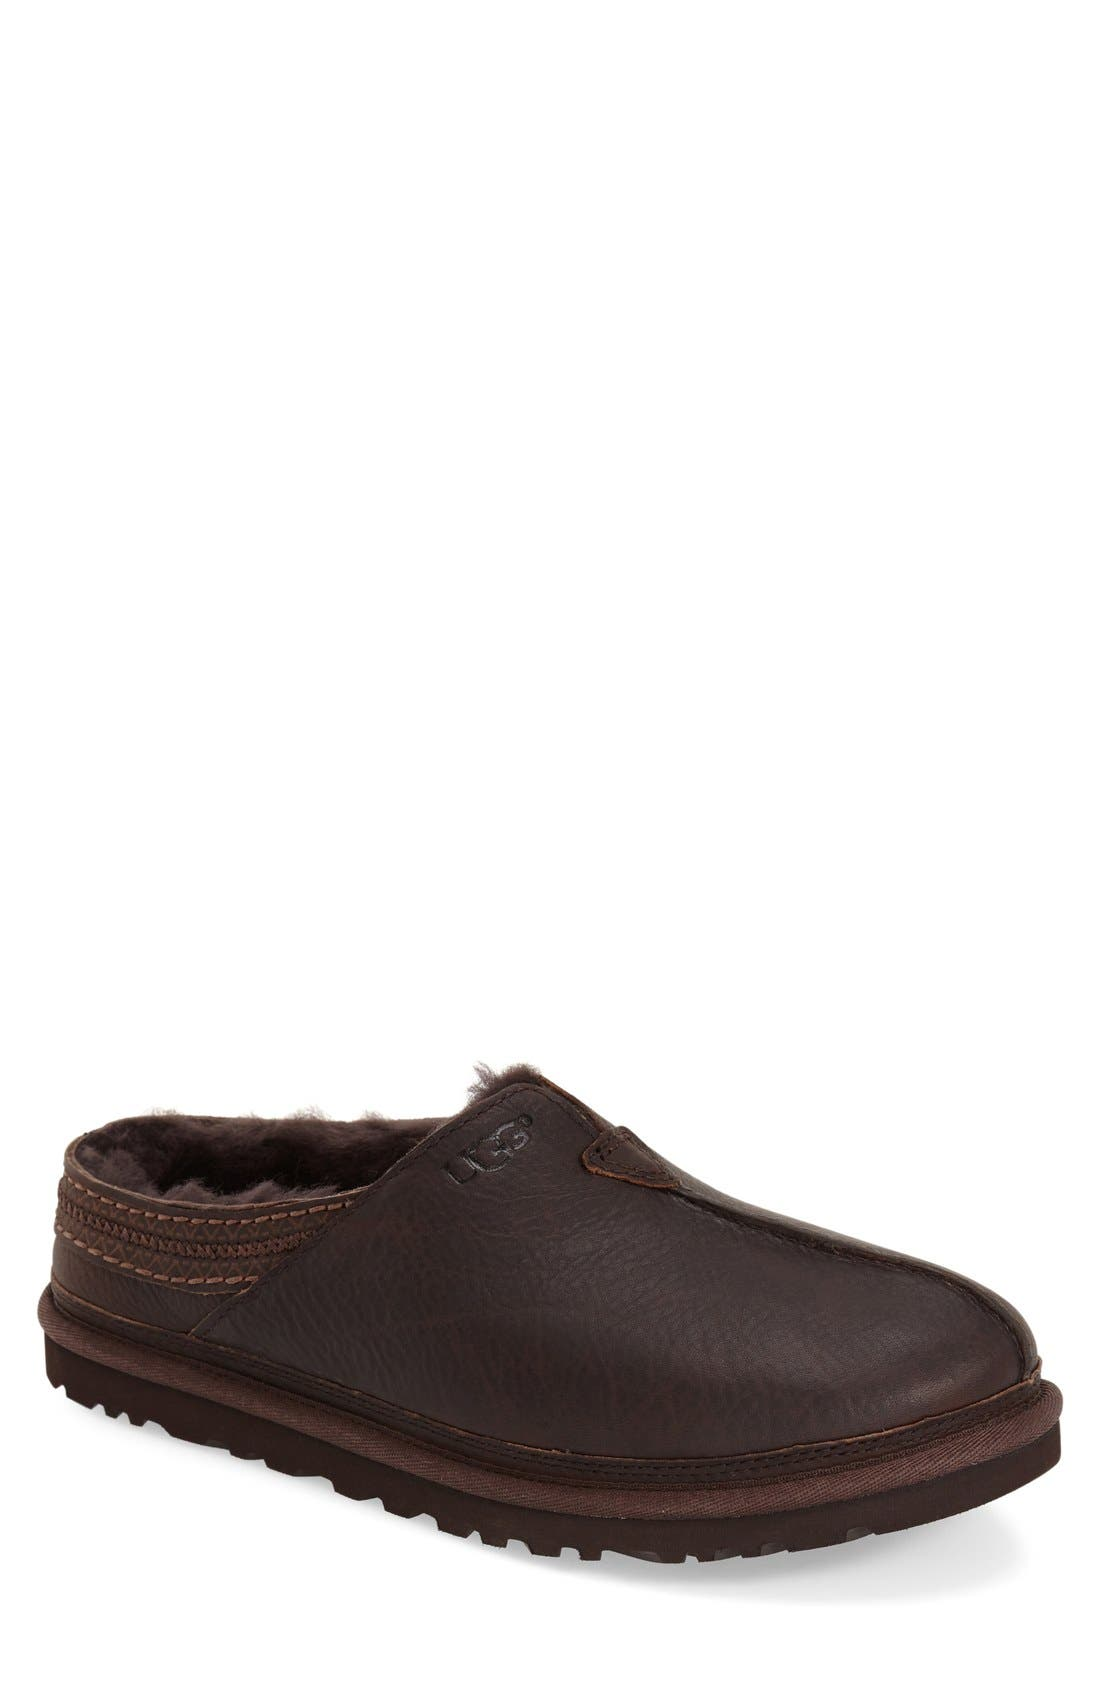 Alternate Image 1 Selected - UGG® Neuman Slipper (Men)